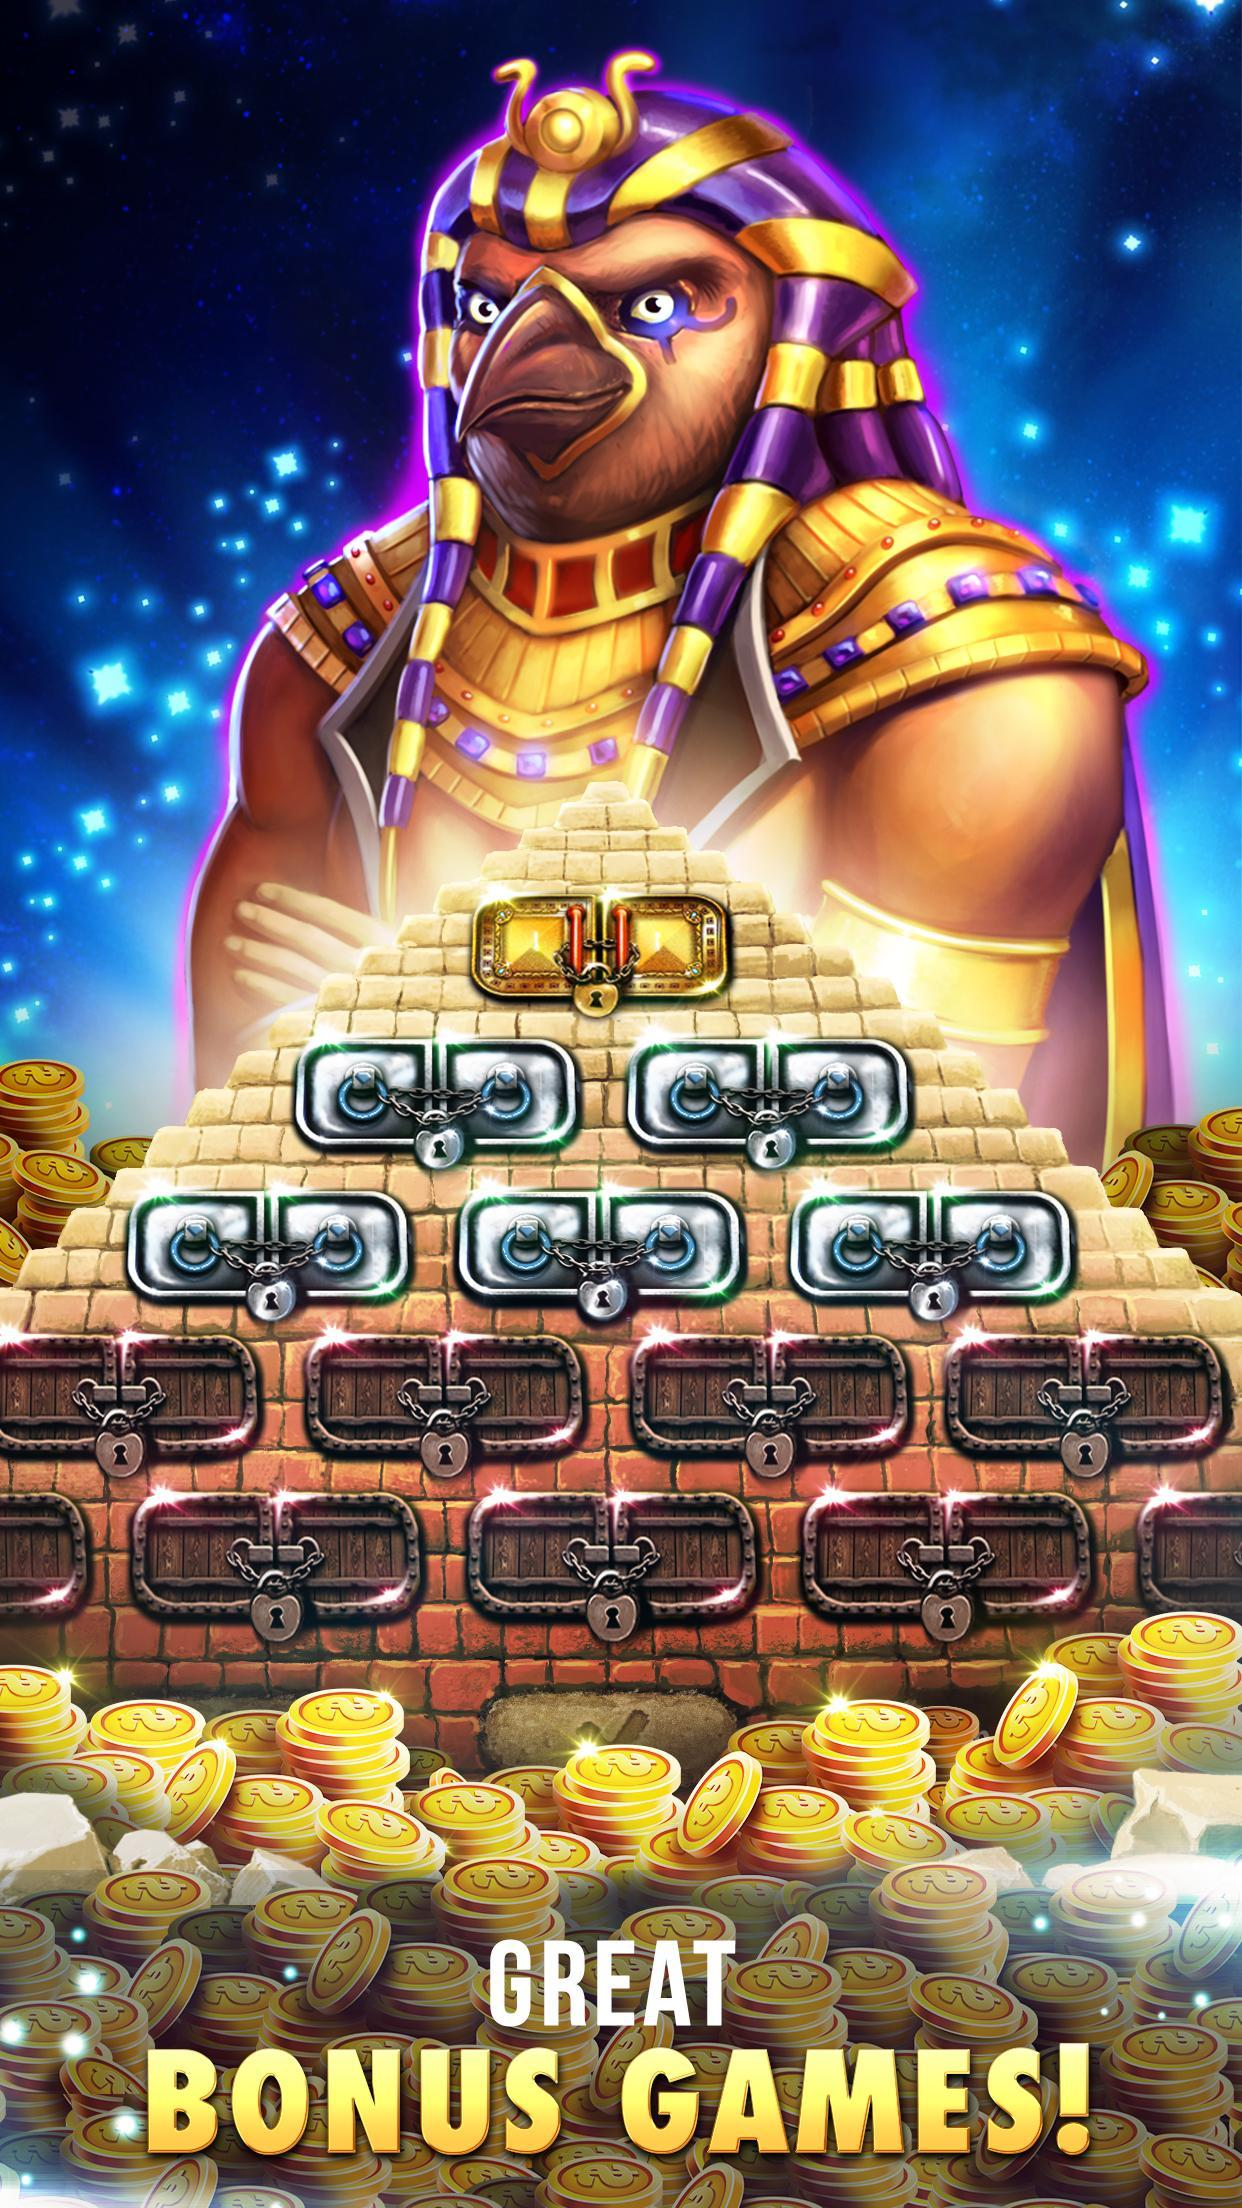 Slots™ - Pharaoh's adventure 2.8.3602 Screenshot 14